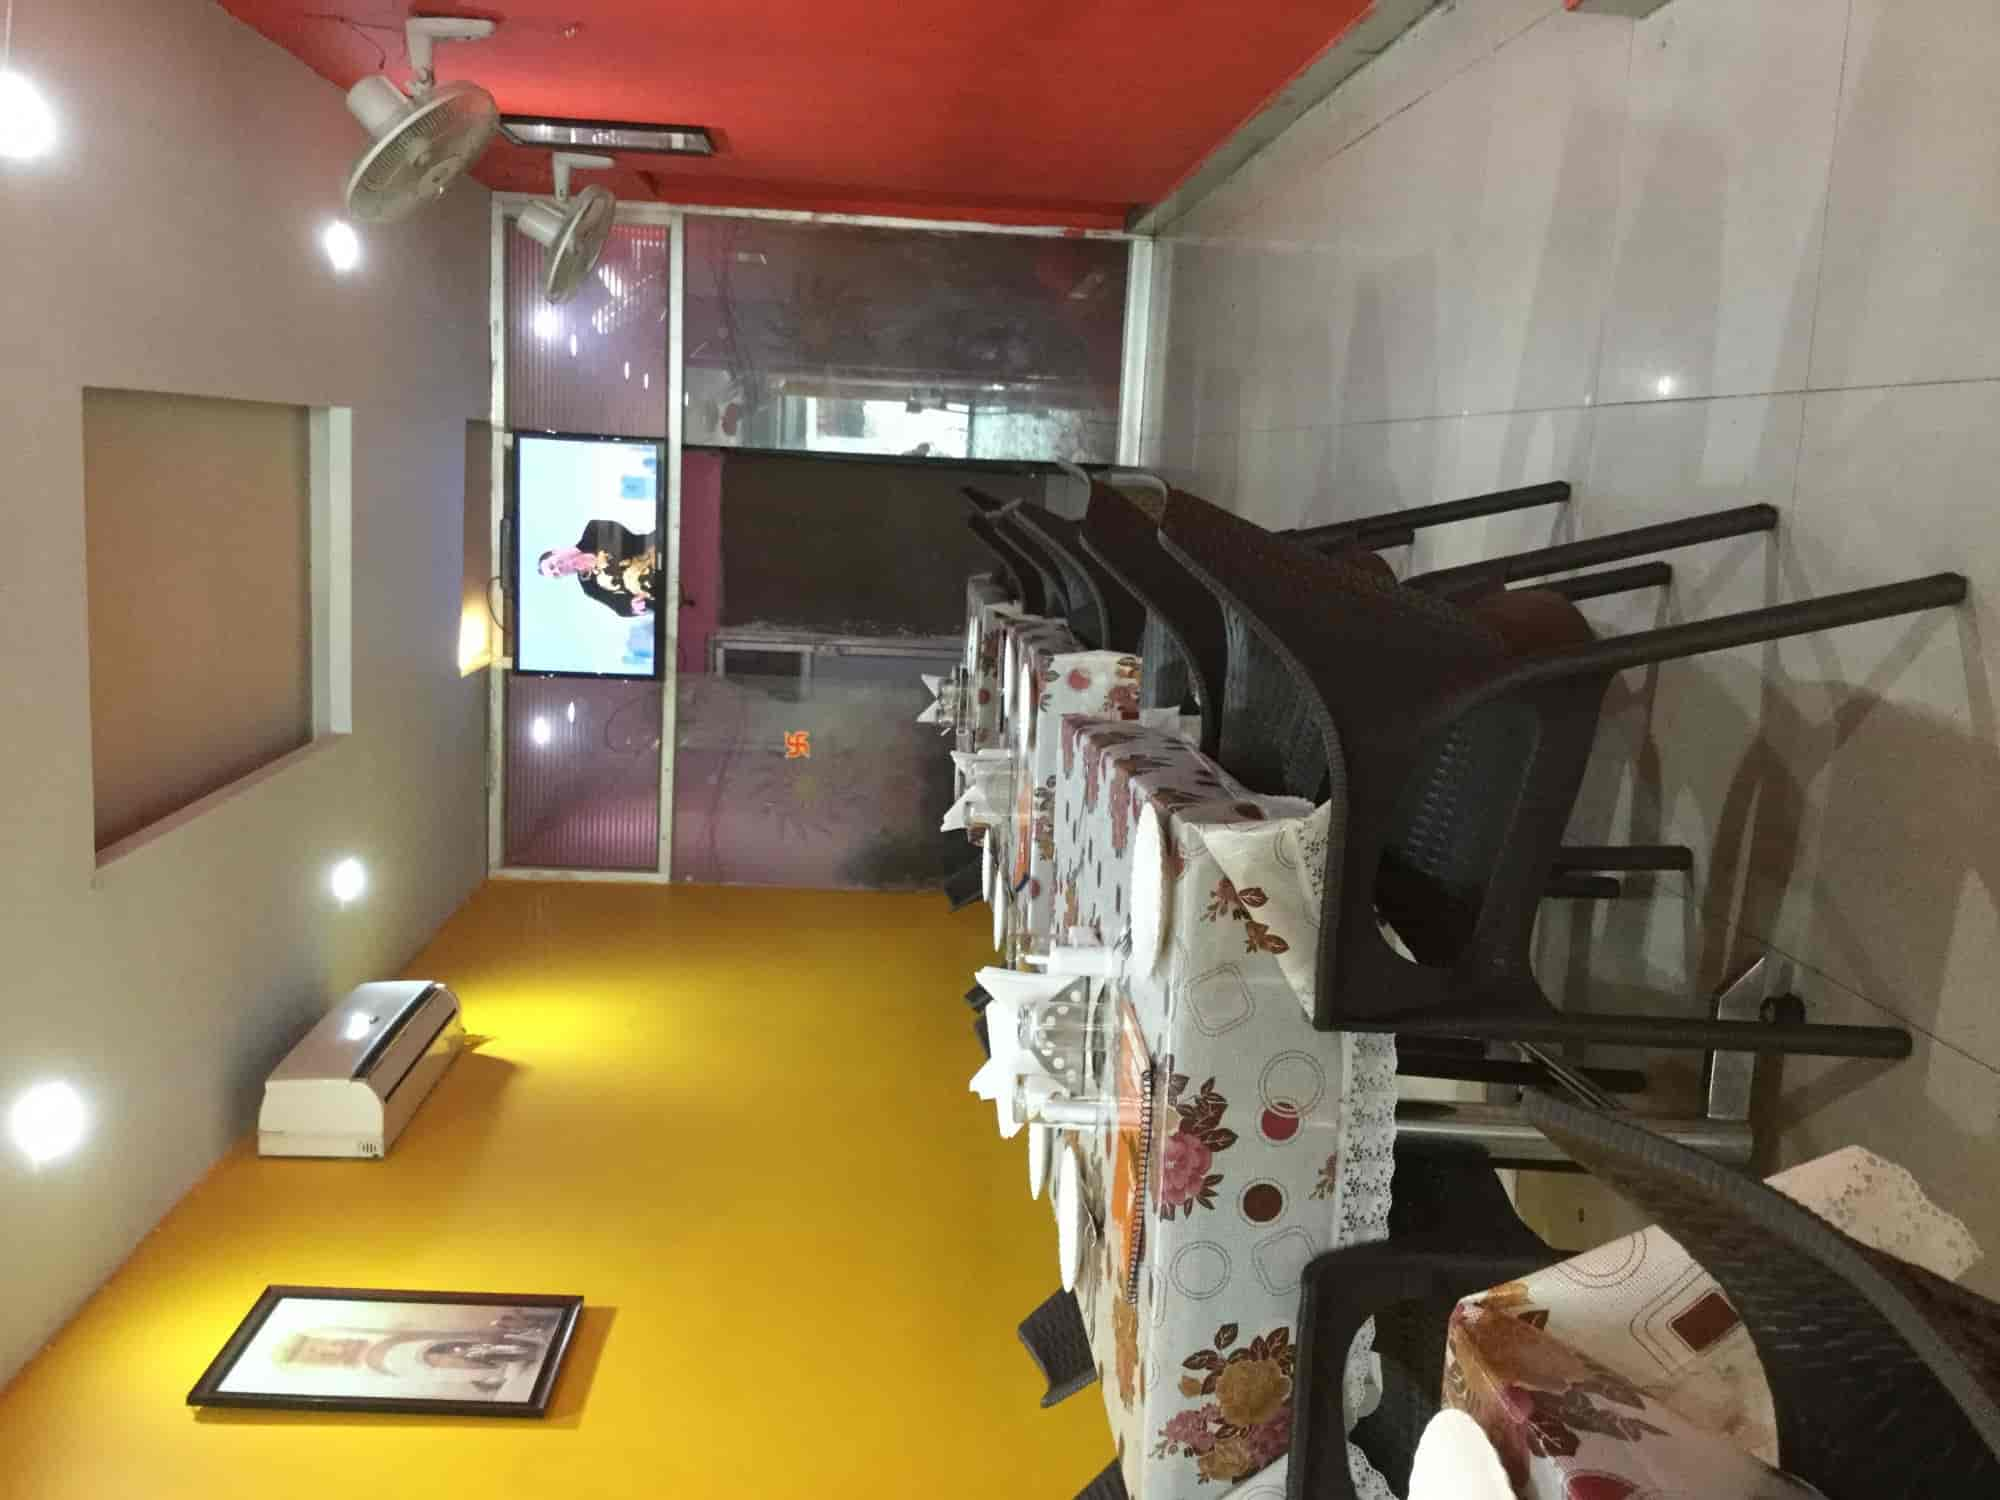 Krazy Kitchen Photos, Aliganj, Lucknow- Pictures & Images Gallery ...